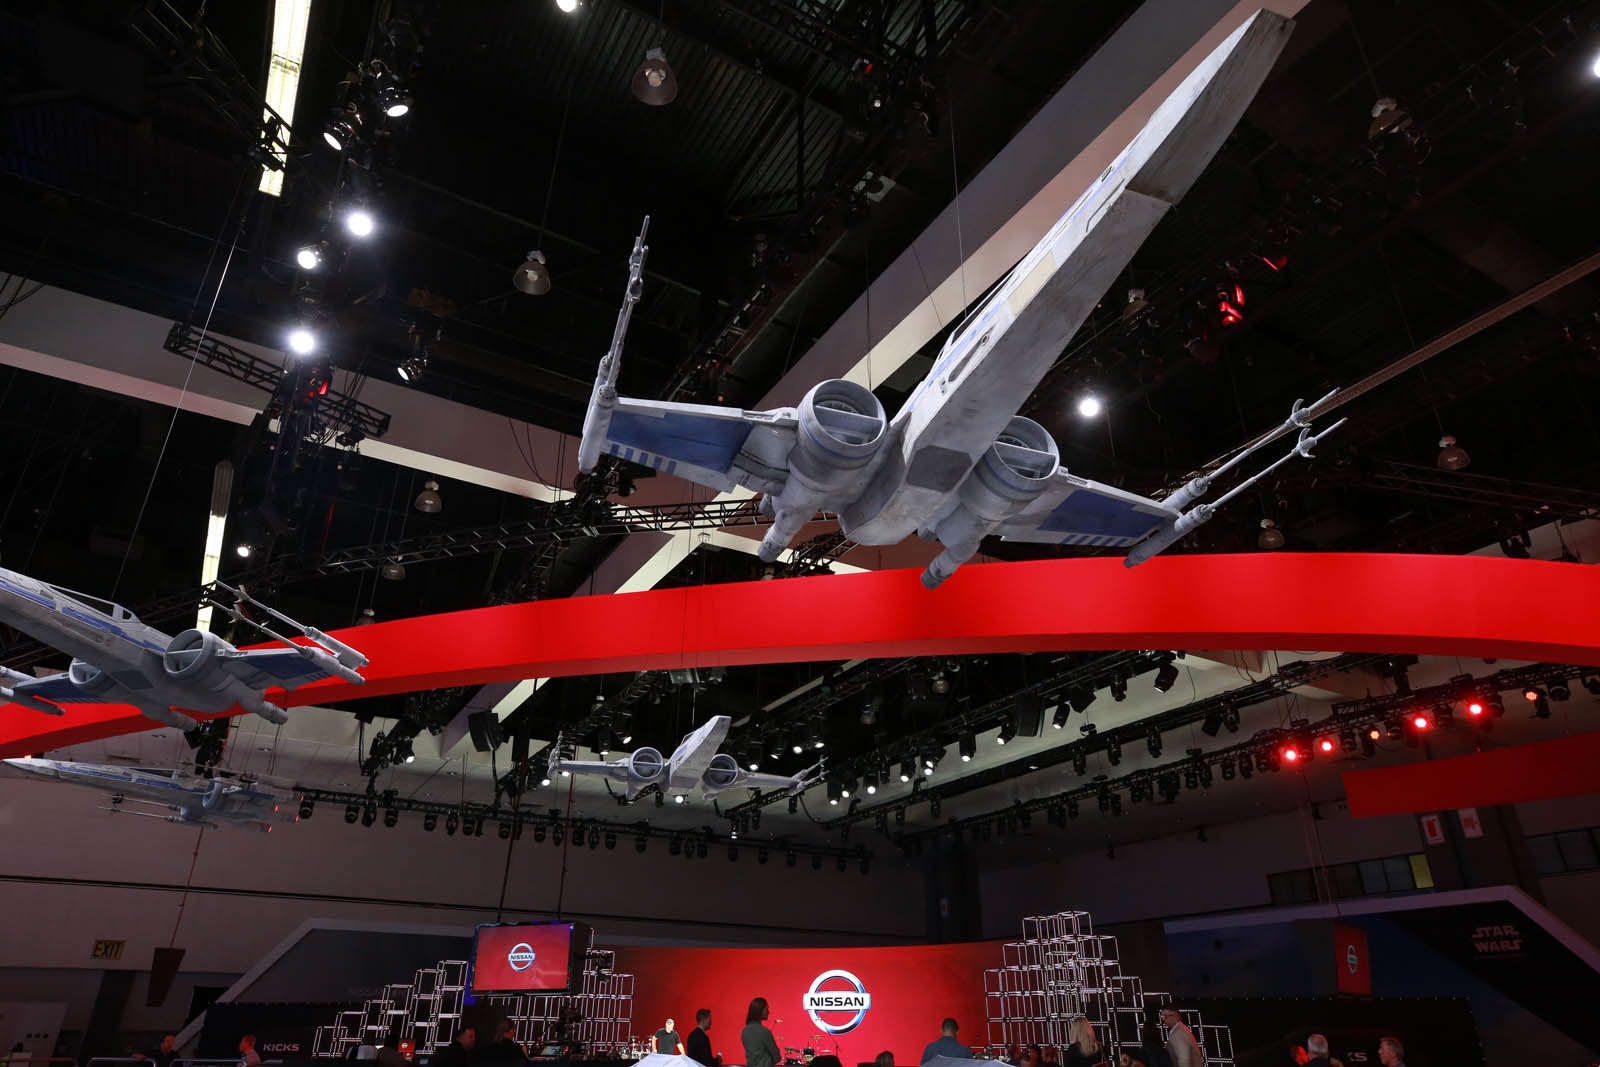 The Nissan booth at the 2017 Los Angeles Auto Show will feature an all-new crossover utility vehicle and a fully immersive Star Wars: The Last Jedi-themed display.